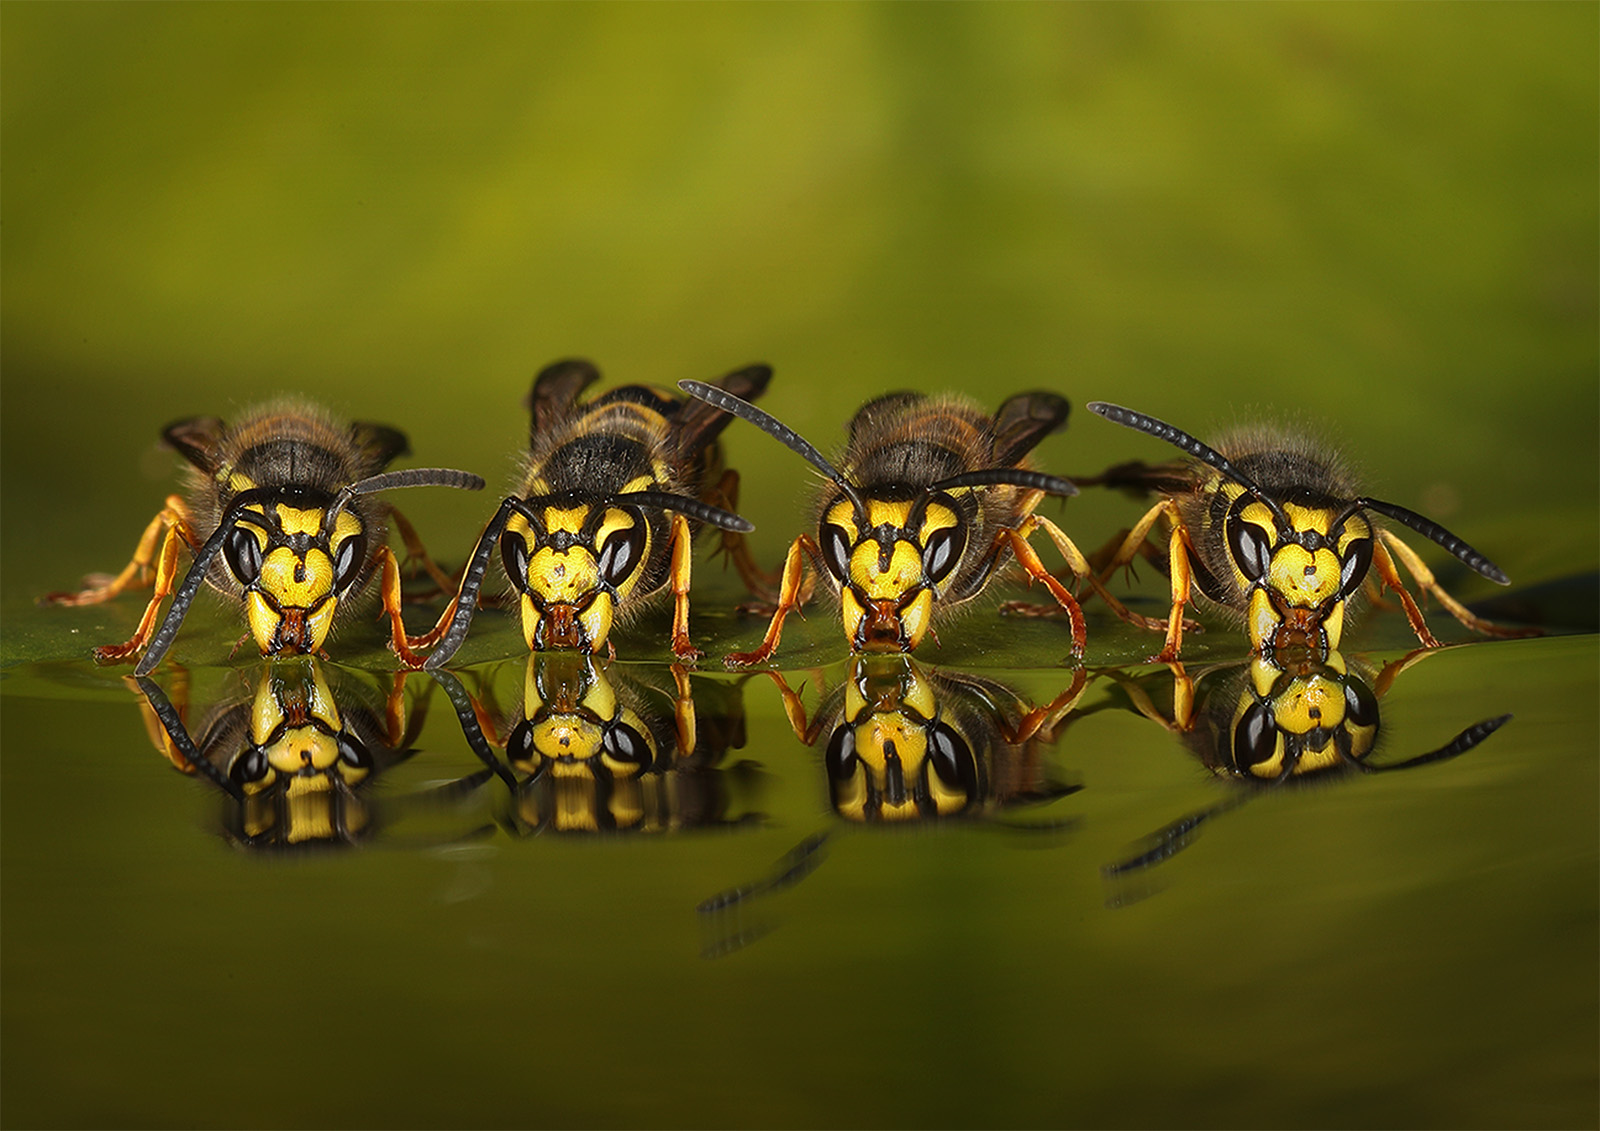 C0249180_Roy-Rimmer_Four-Wasps